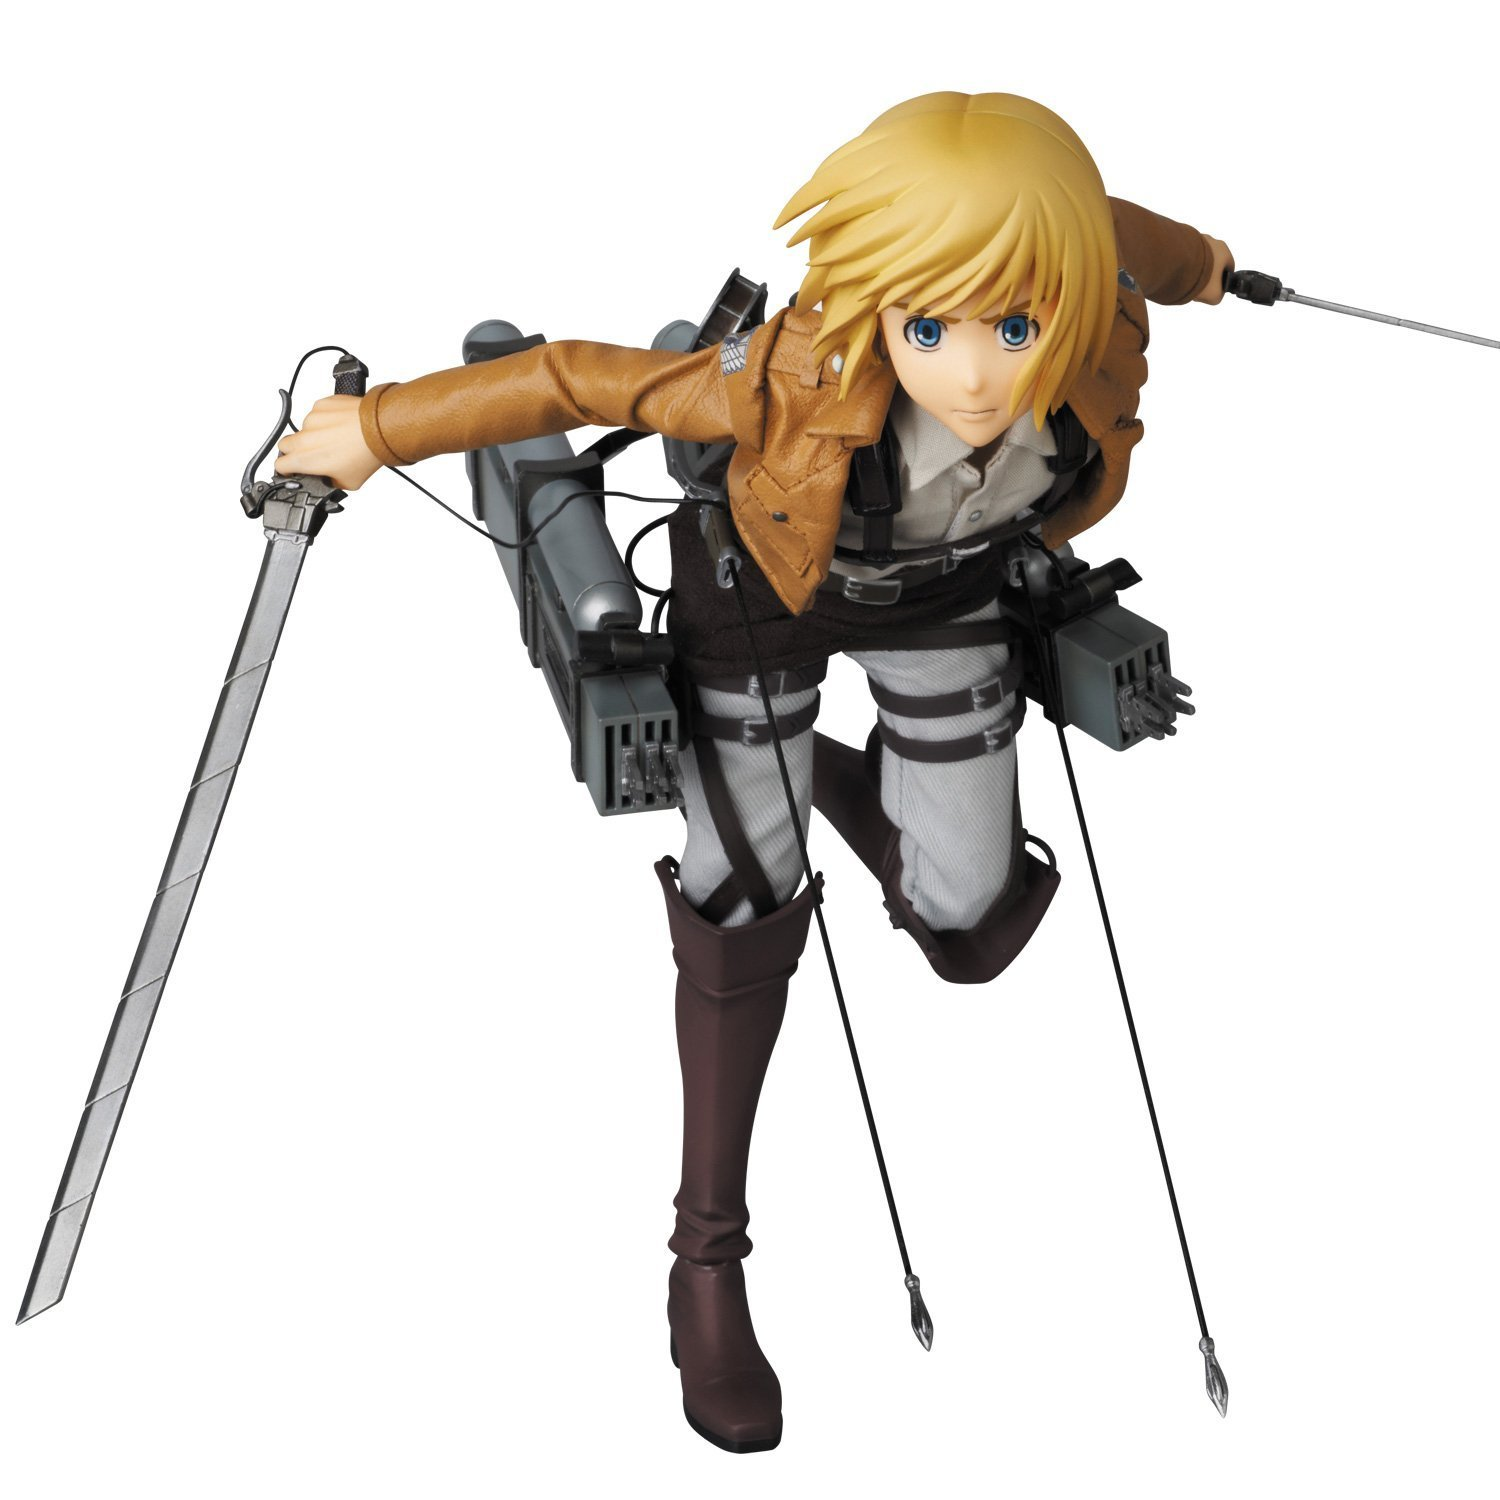 1 FREE Official Japanese Trading Card Bundle RAH# 676 Medicom First Production Version : ~11.8 x Real Action Heroes Figure Series Attack on Titan Armin Arlert